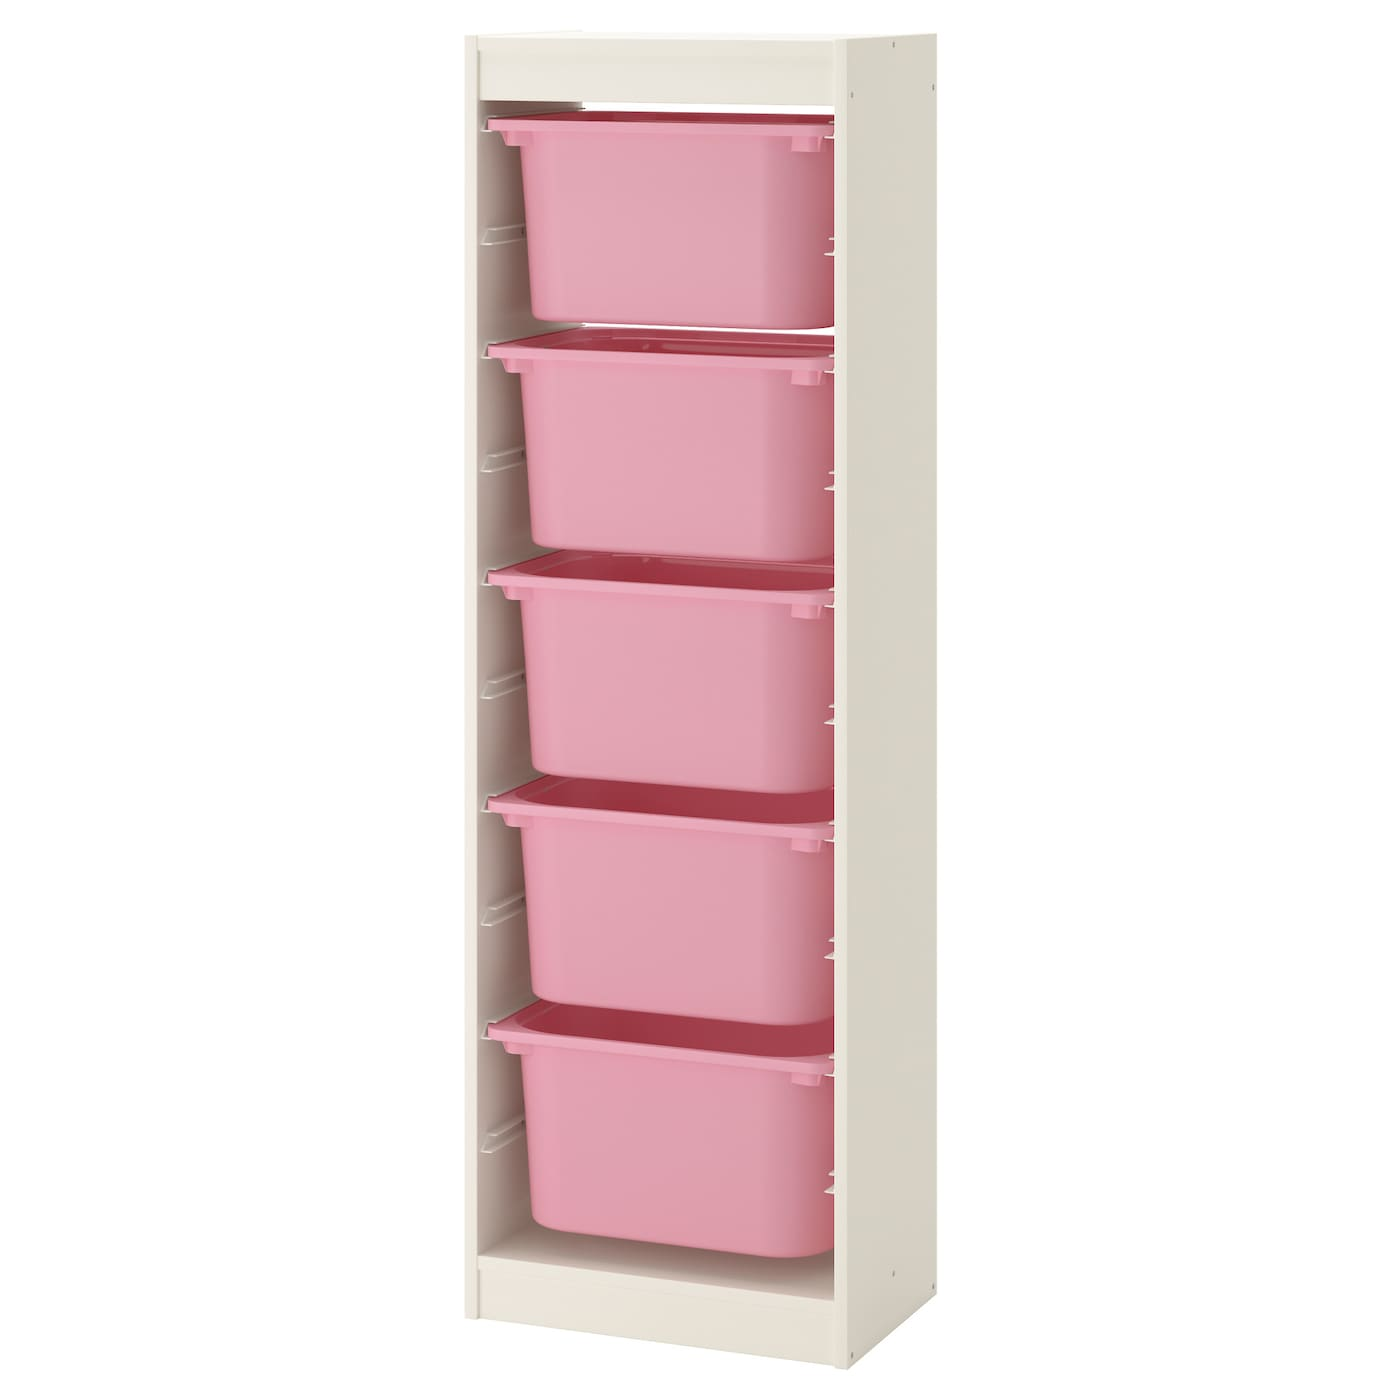 IKEA TROFAST storage combination with boxes Vertical storage saves space, practical in small spaces.